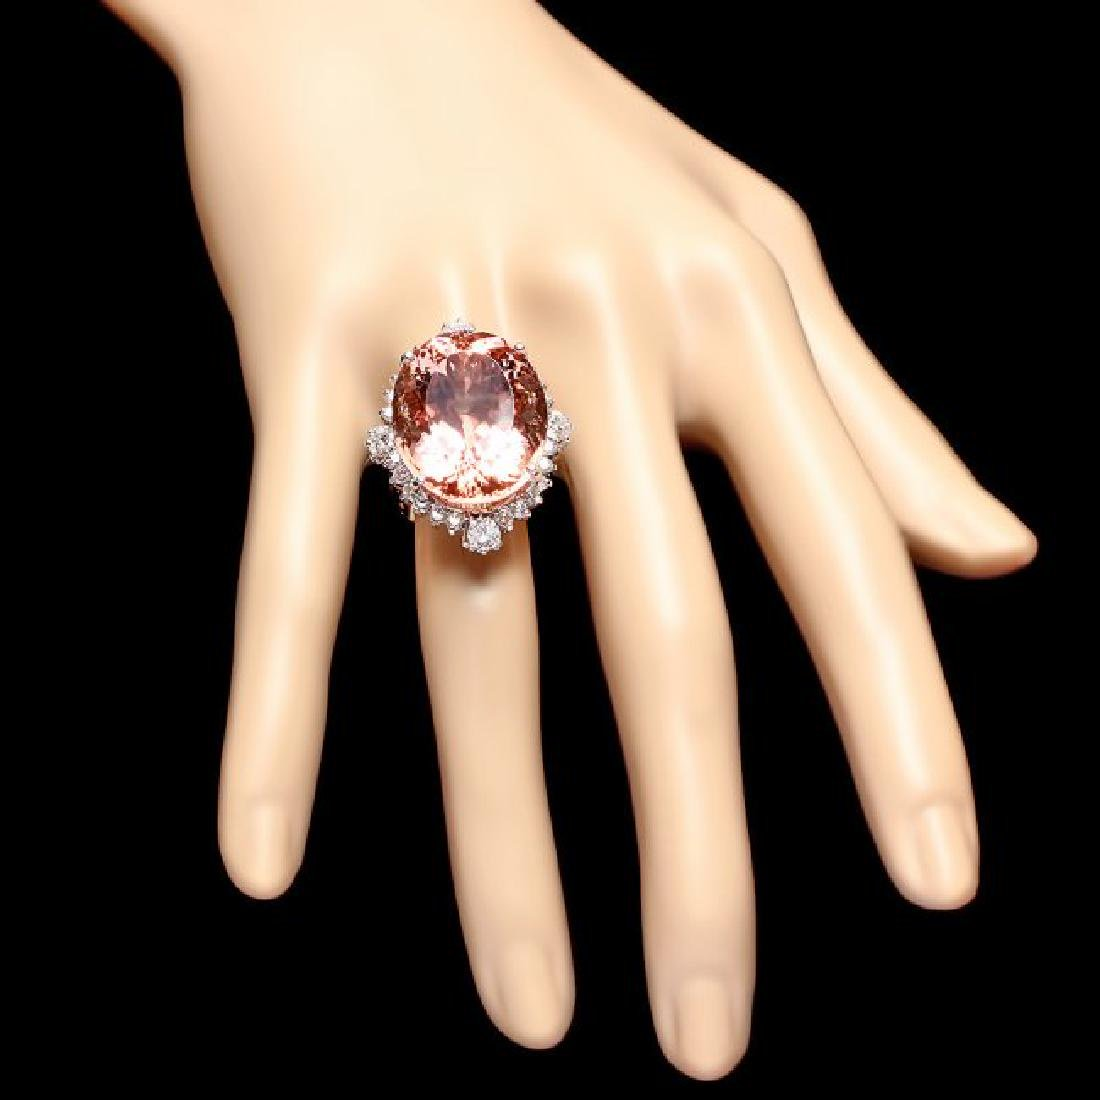 14k Gold 35.00ct Morganite 1.85ct Diamond Ring - 4